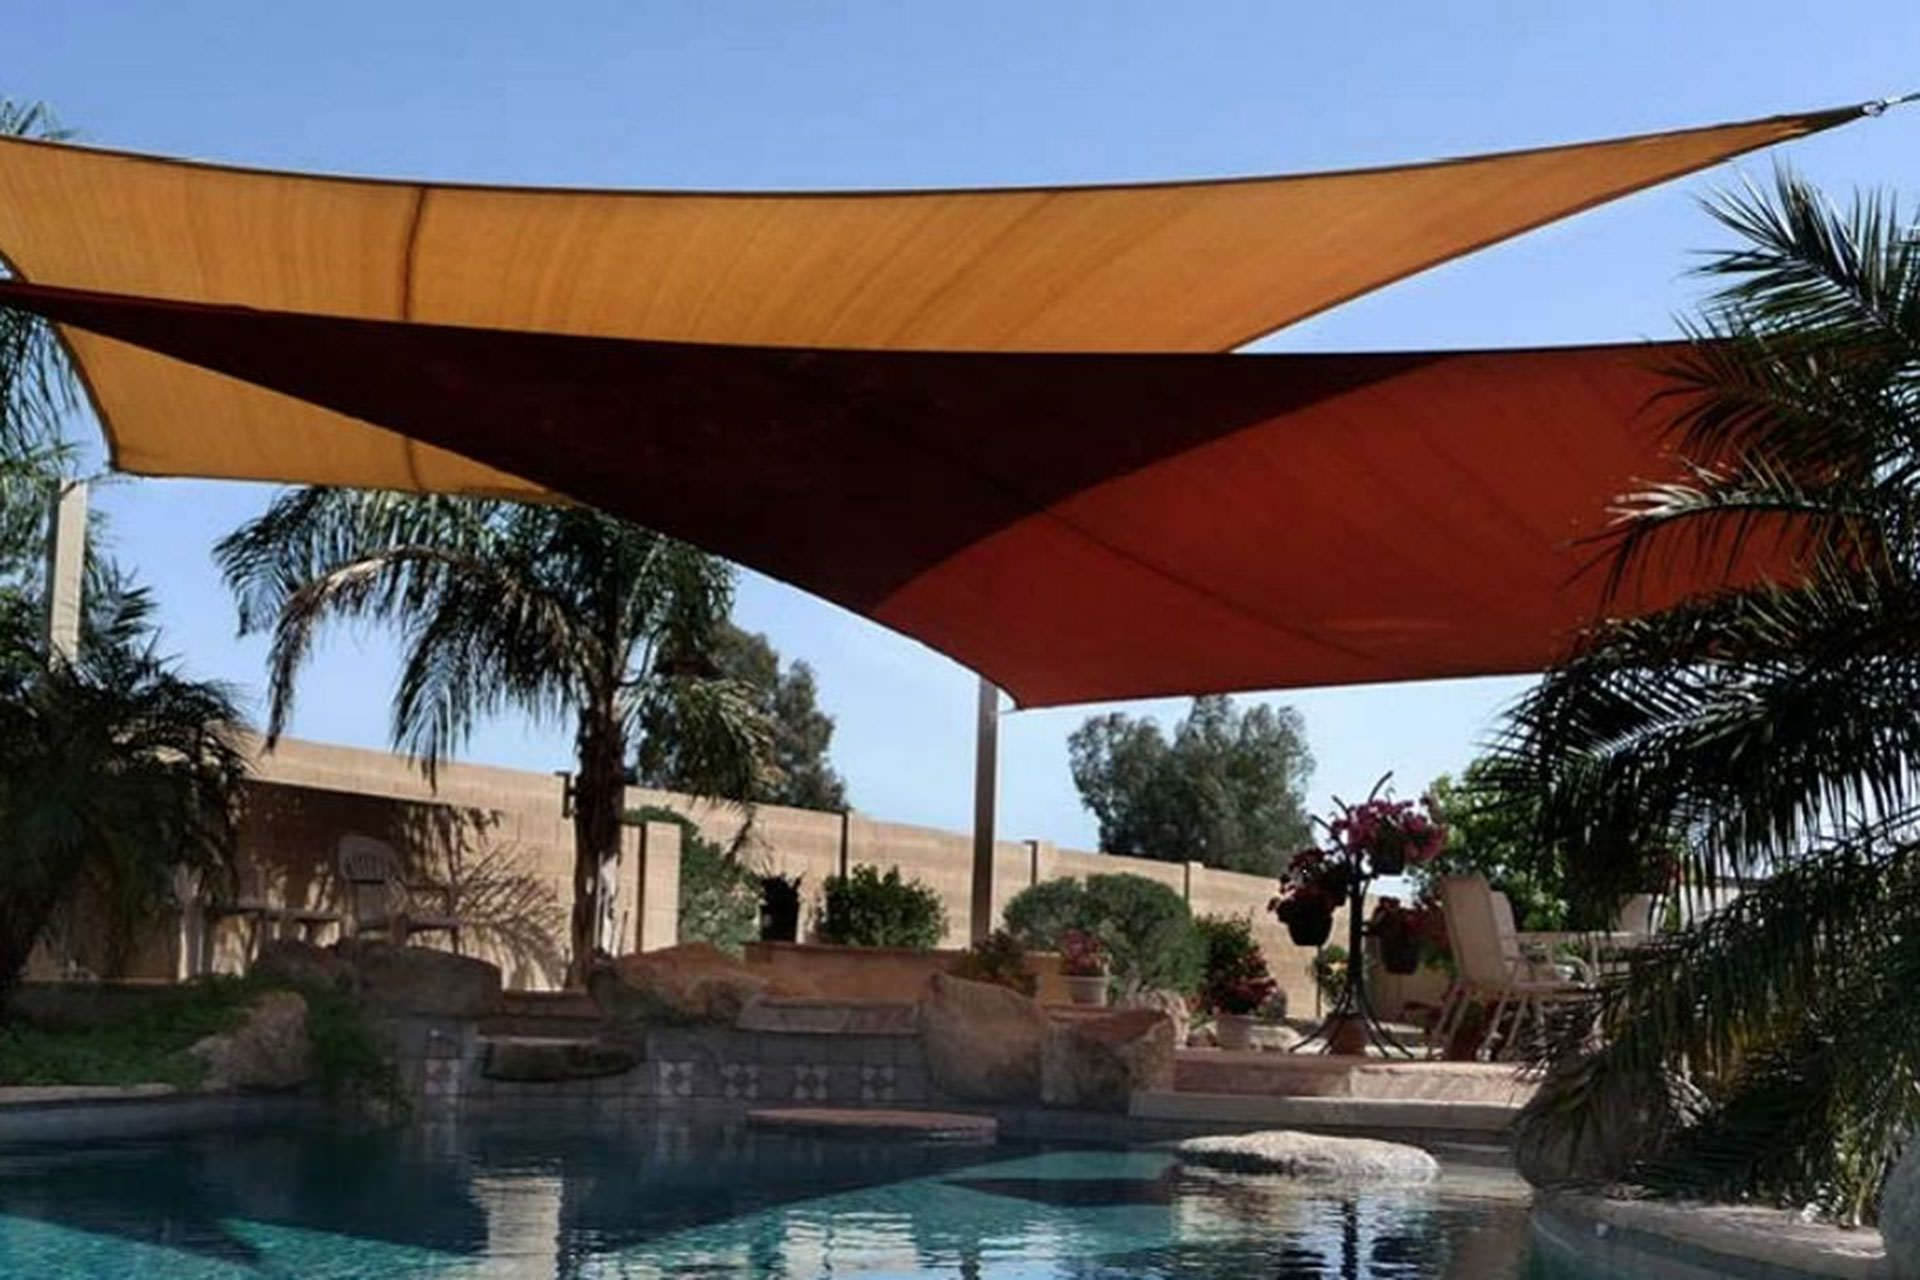 Pool Shade Ideas 7 Ways To Cover Your Swimming Pool Pool Shade